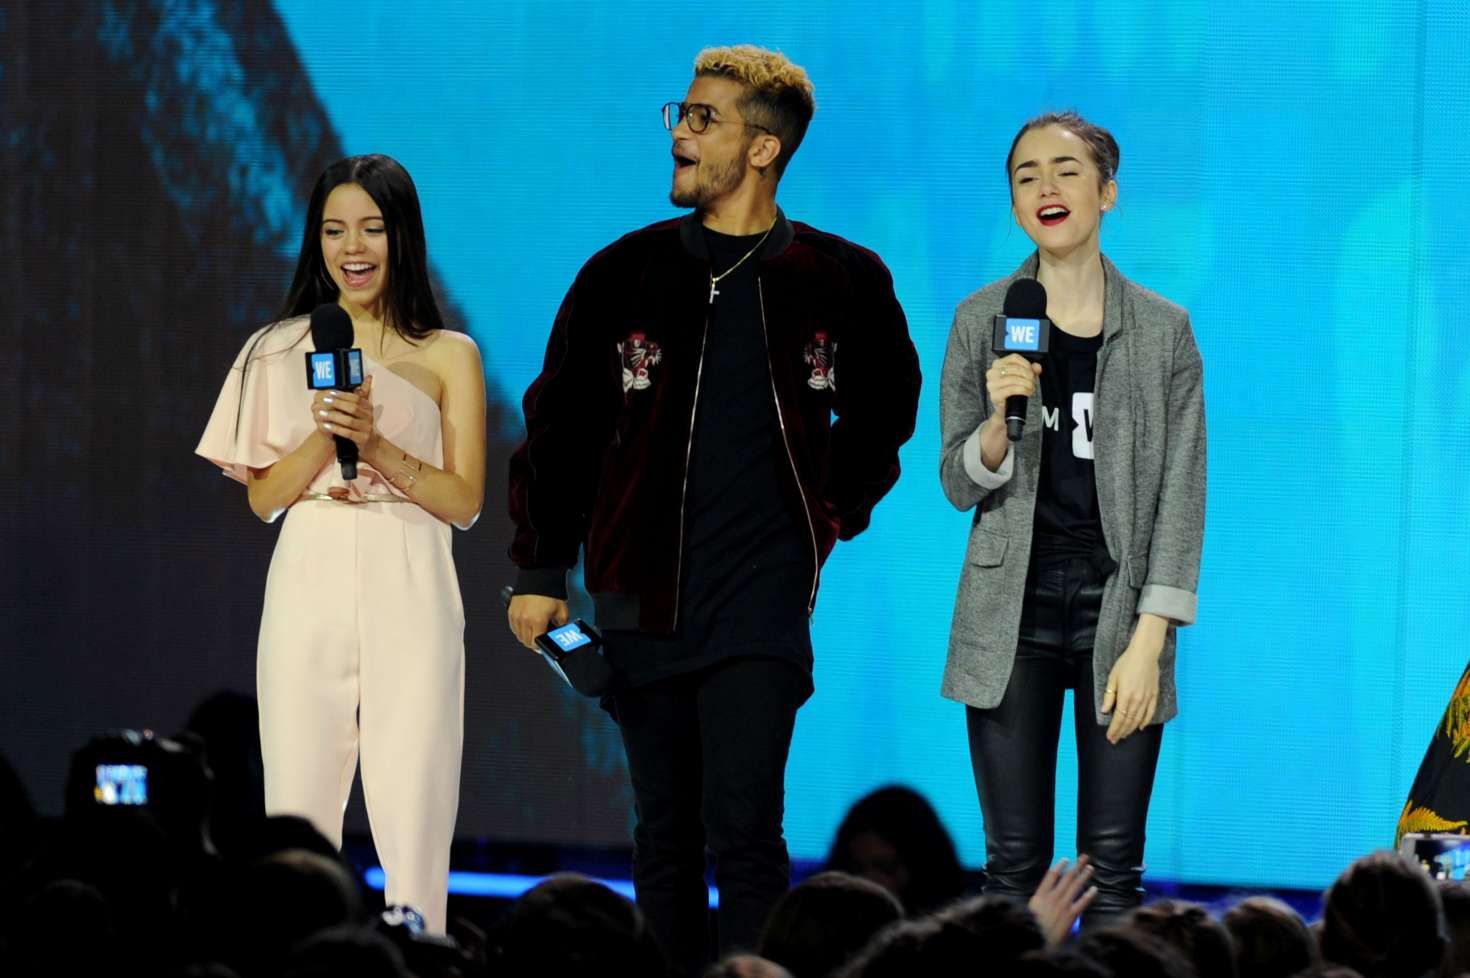 Jenna ortega hosts we day in seattle april 2019 nudes (58 photos), Feet Celebrity pictures